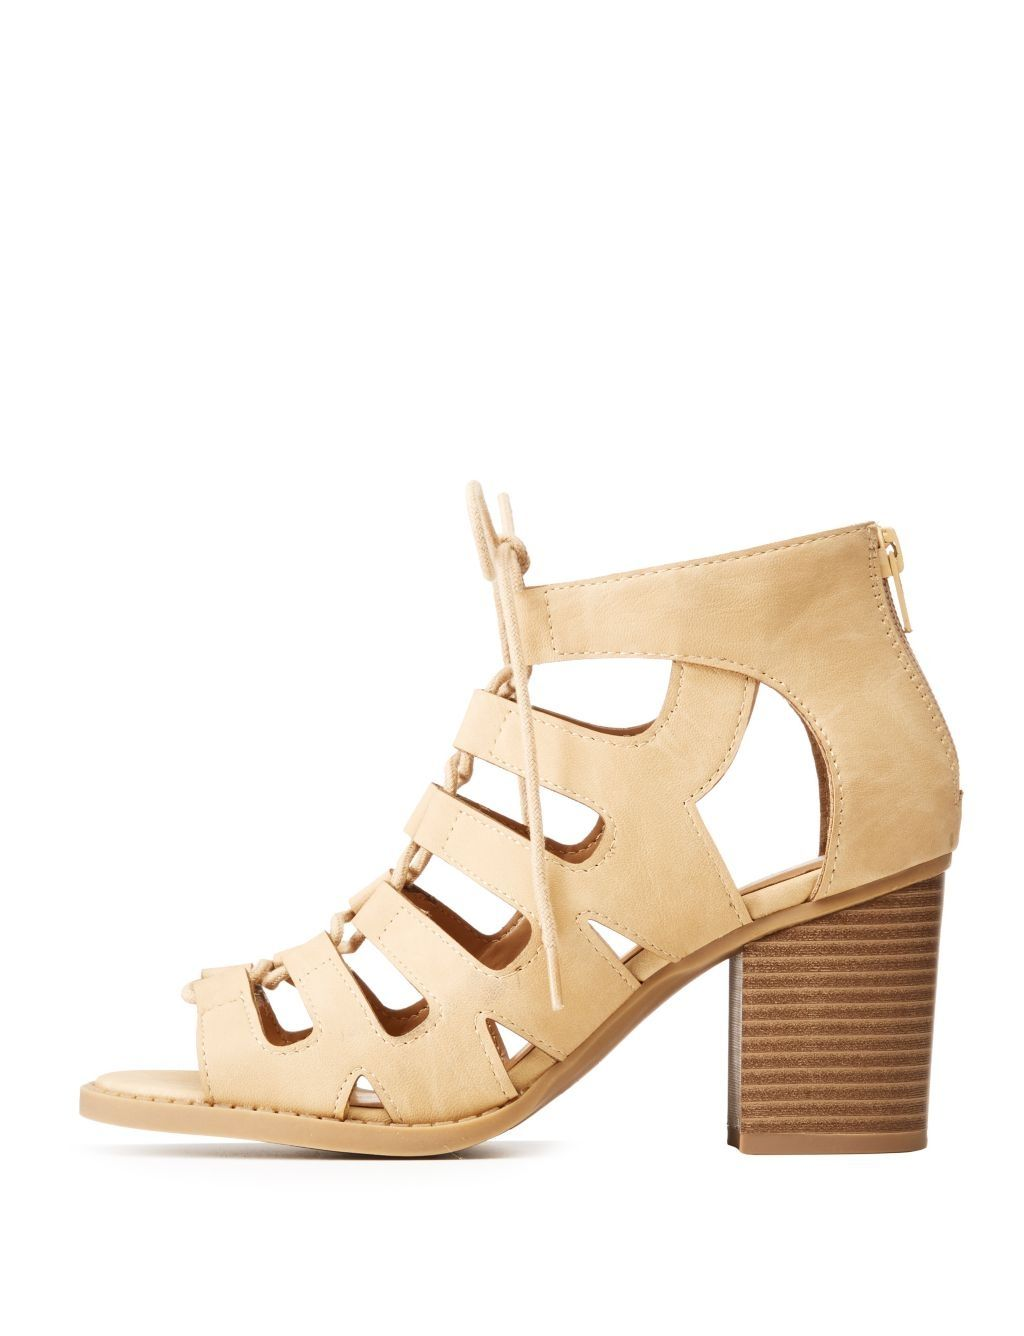 670adeacd05f Buy Charlotte Russe Lace-Up Open Toe Sandals in Egypt